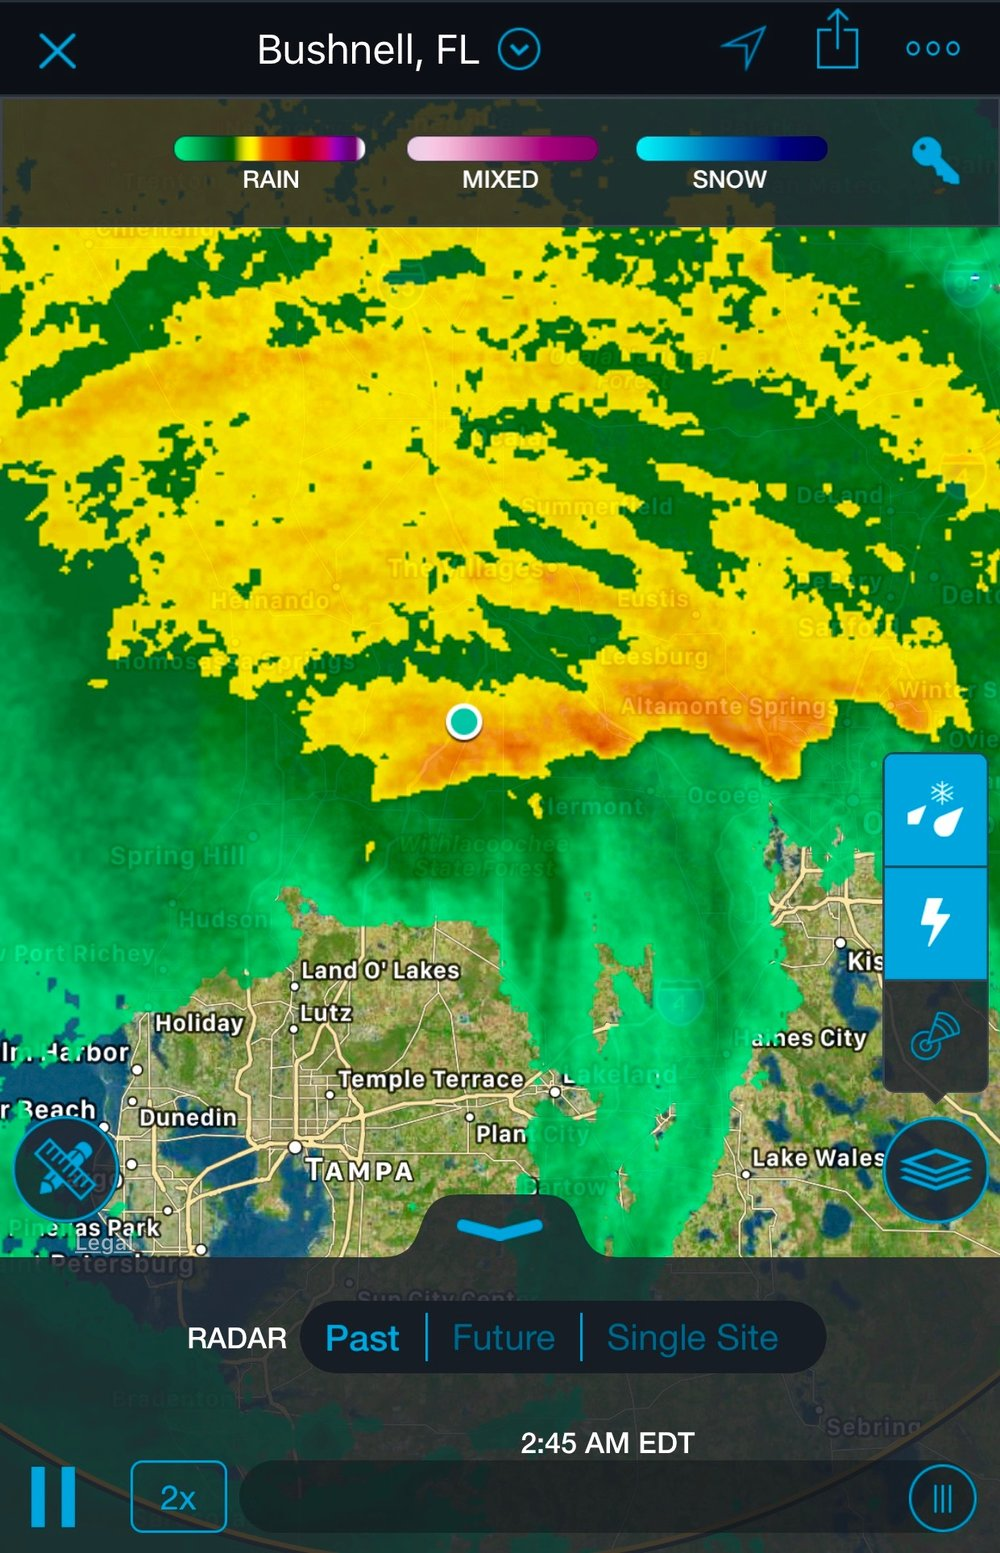 Radar image of the strongest portion of Hurricane Irma over Bushnell, Florida, (blue dot) on Monday, Sept. 11, 2017, 2:45 a.m. (Glenn Marston via Storm app on iPhone)